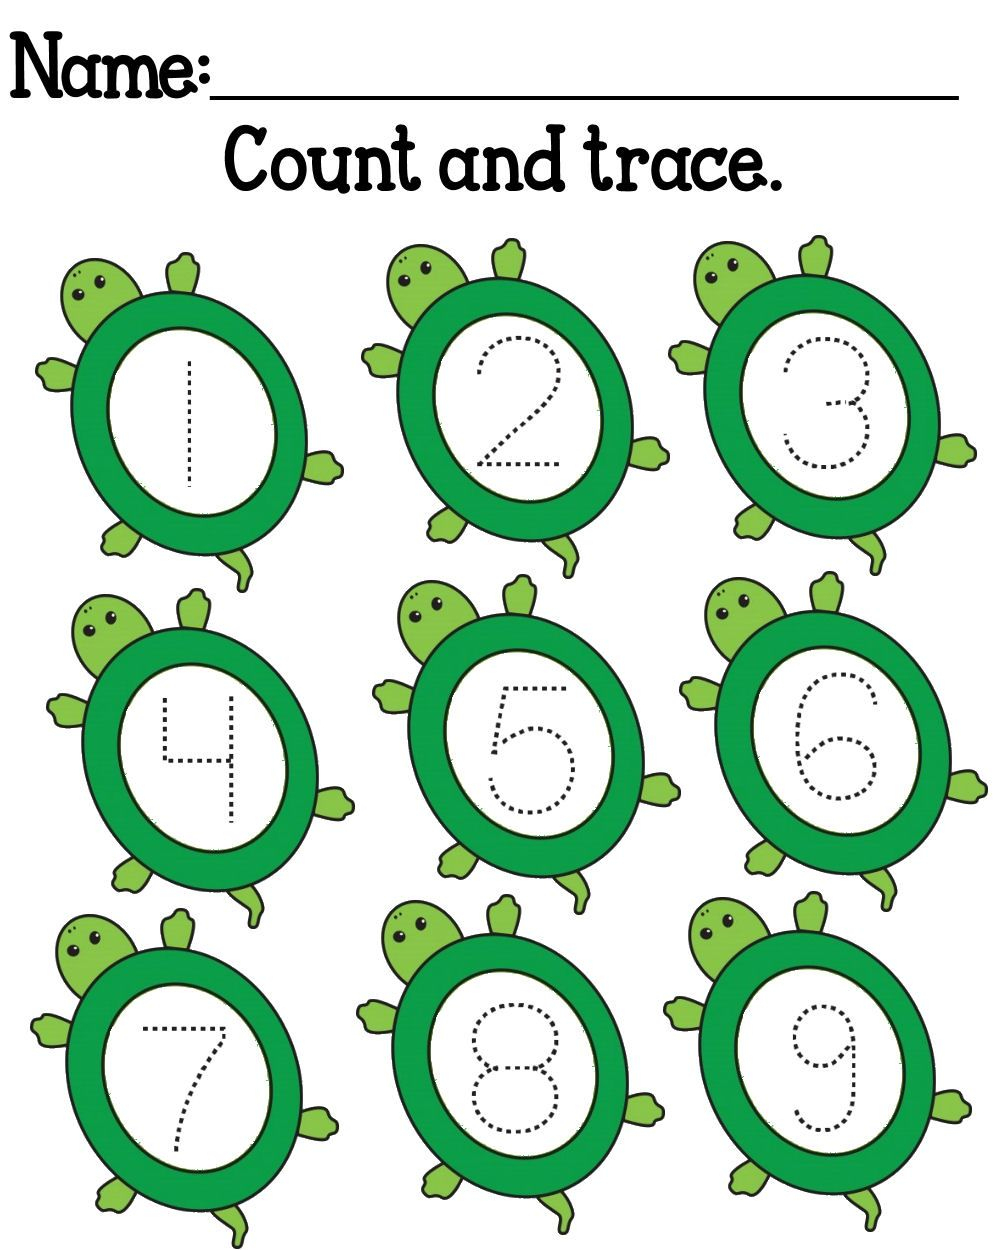 Free Yertle The Turtle Printables | Mysunwillshine | Reptile And - Free Printable Reptile Worksheets